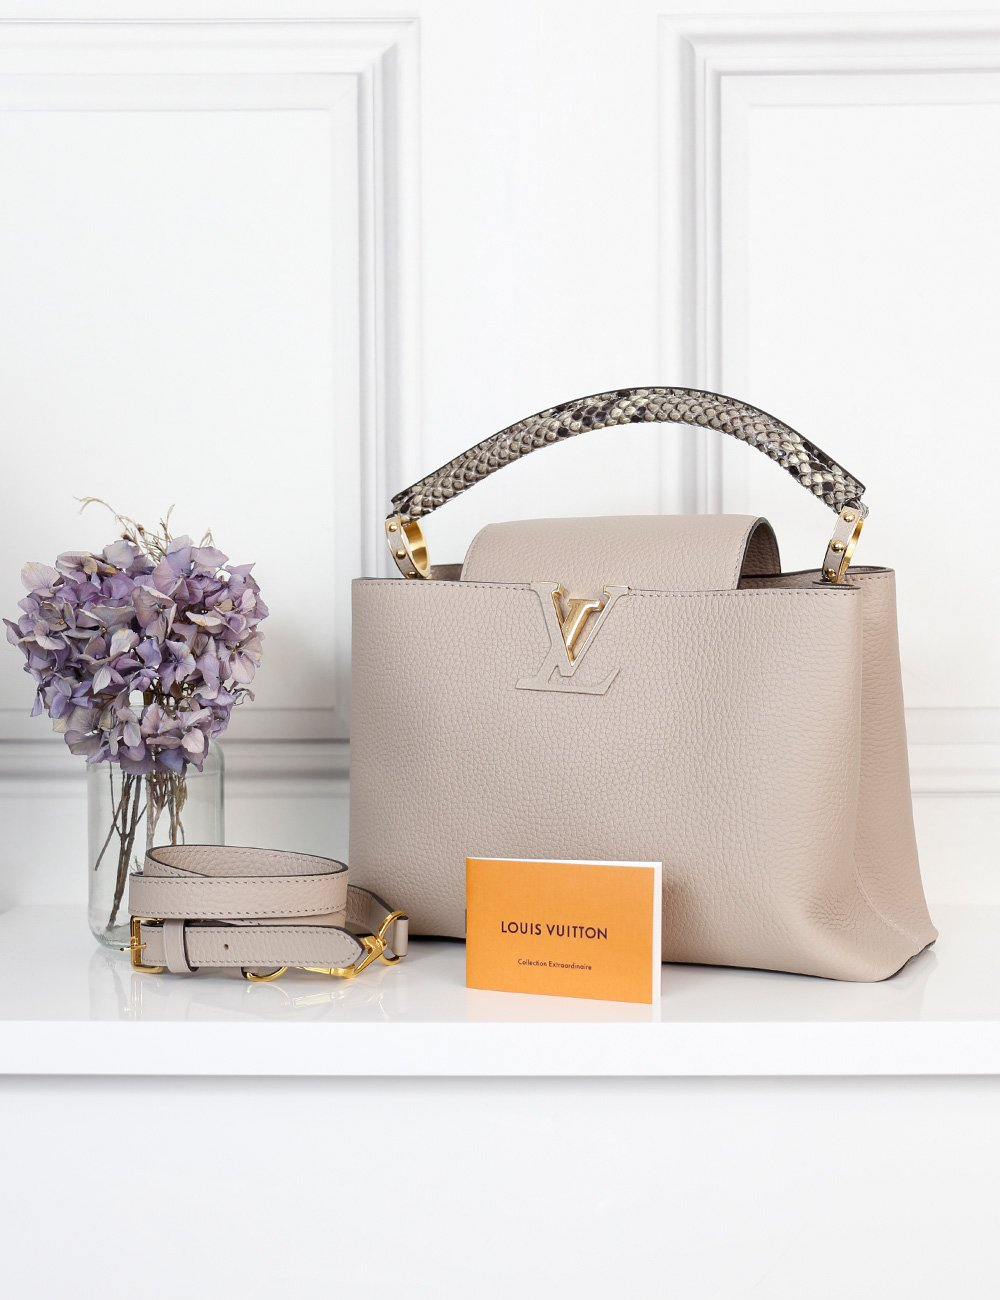 Louis Vuitton grey Capucines PM Taurillon bag with python handle